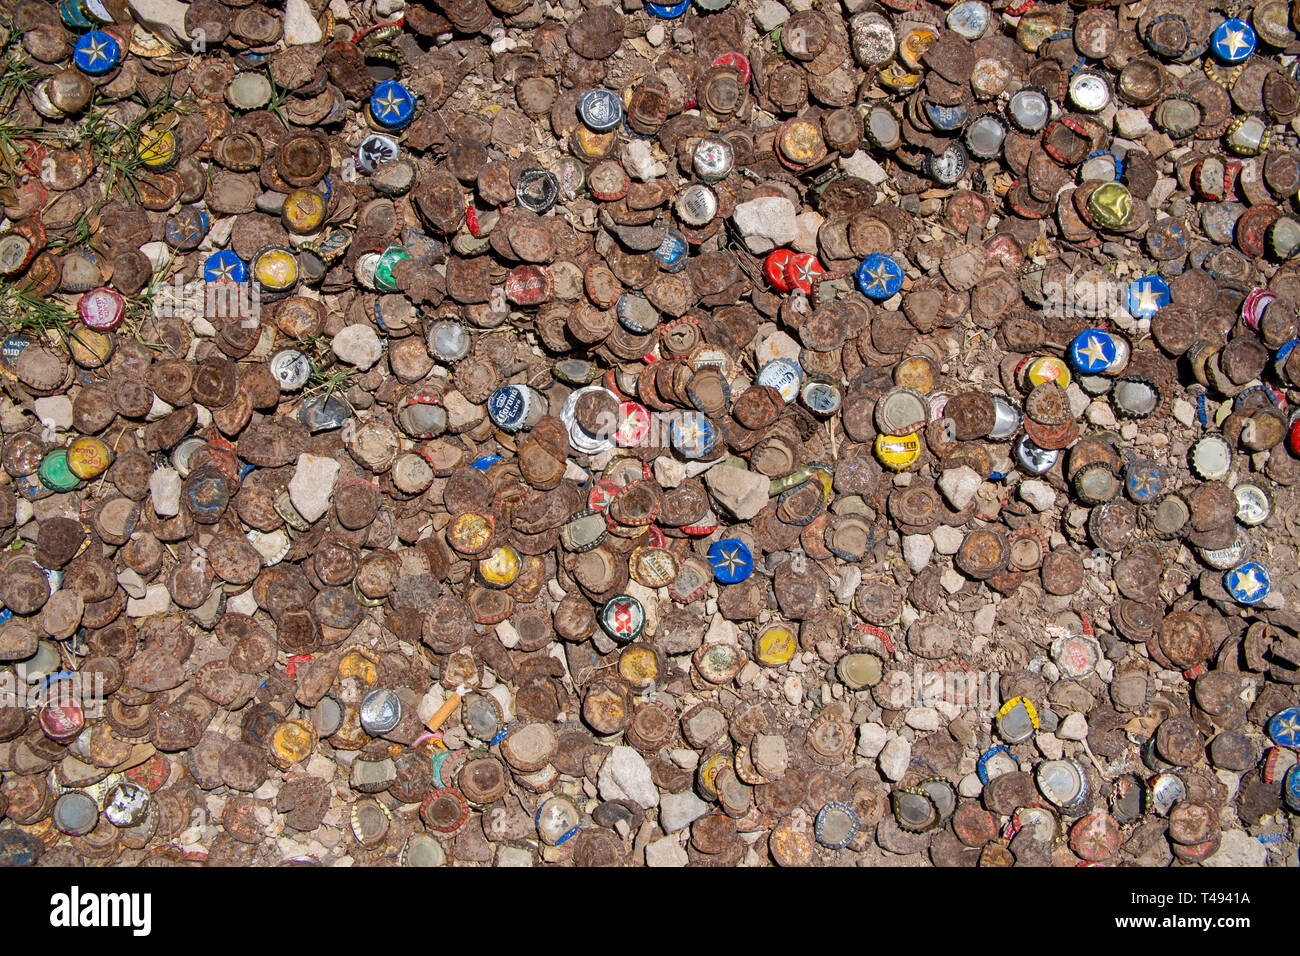 Beer bottles caps covering the backyard of a bar in Marfa, Texas. - Stock Image